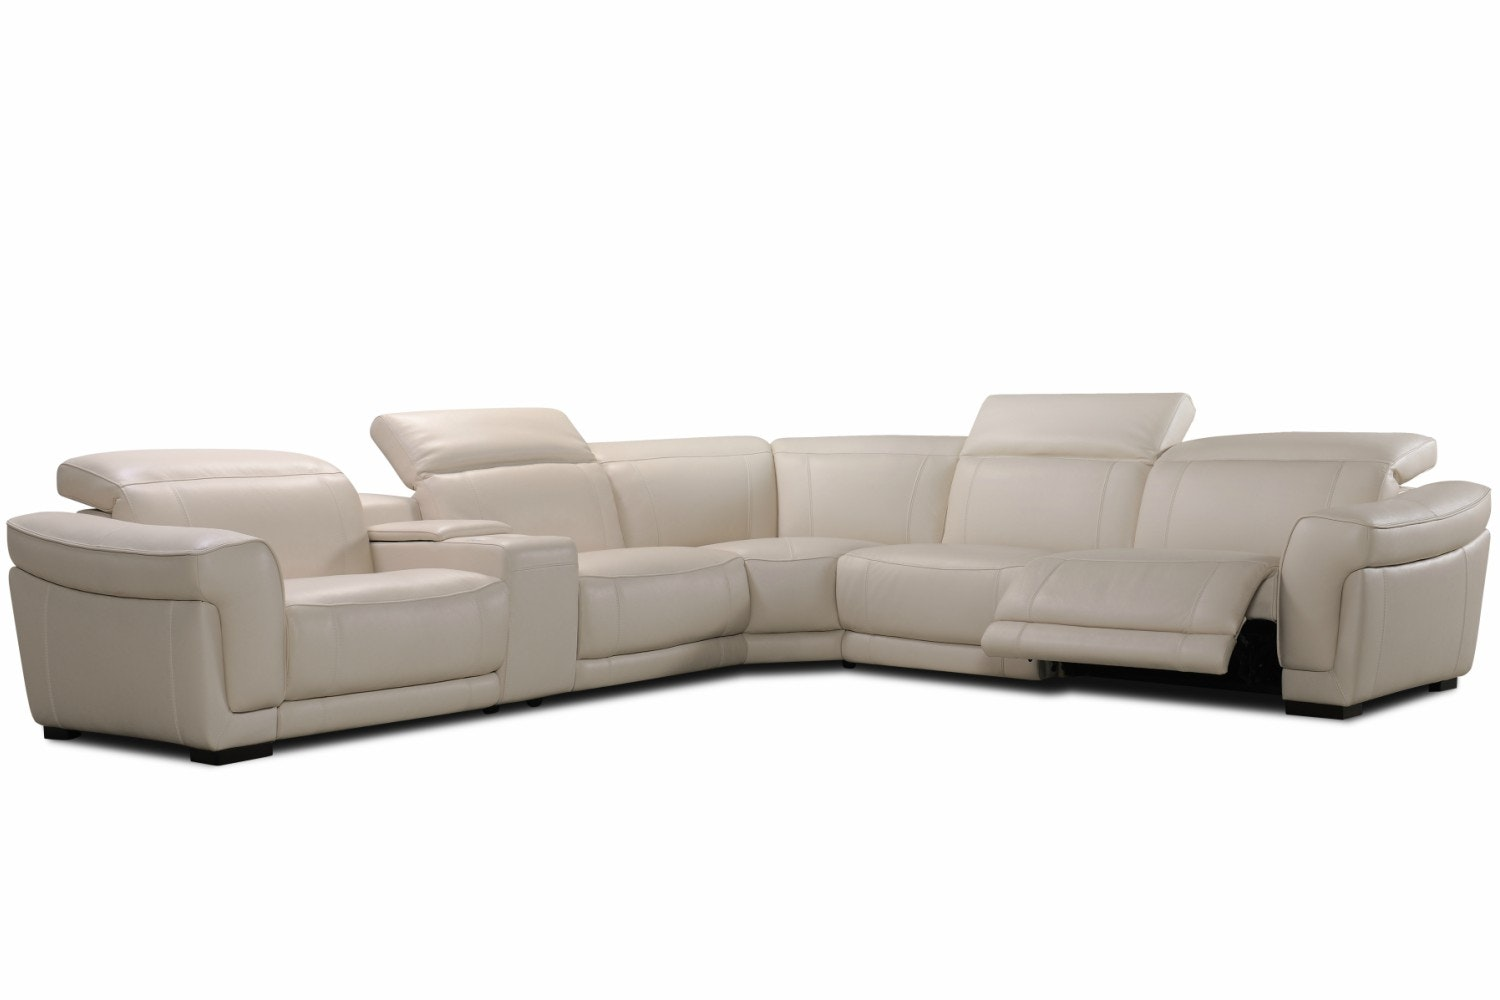 Picture of: Sonny Corner Sofa Electric Recliner Ireland